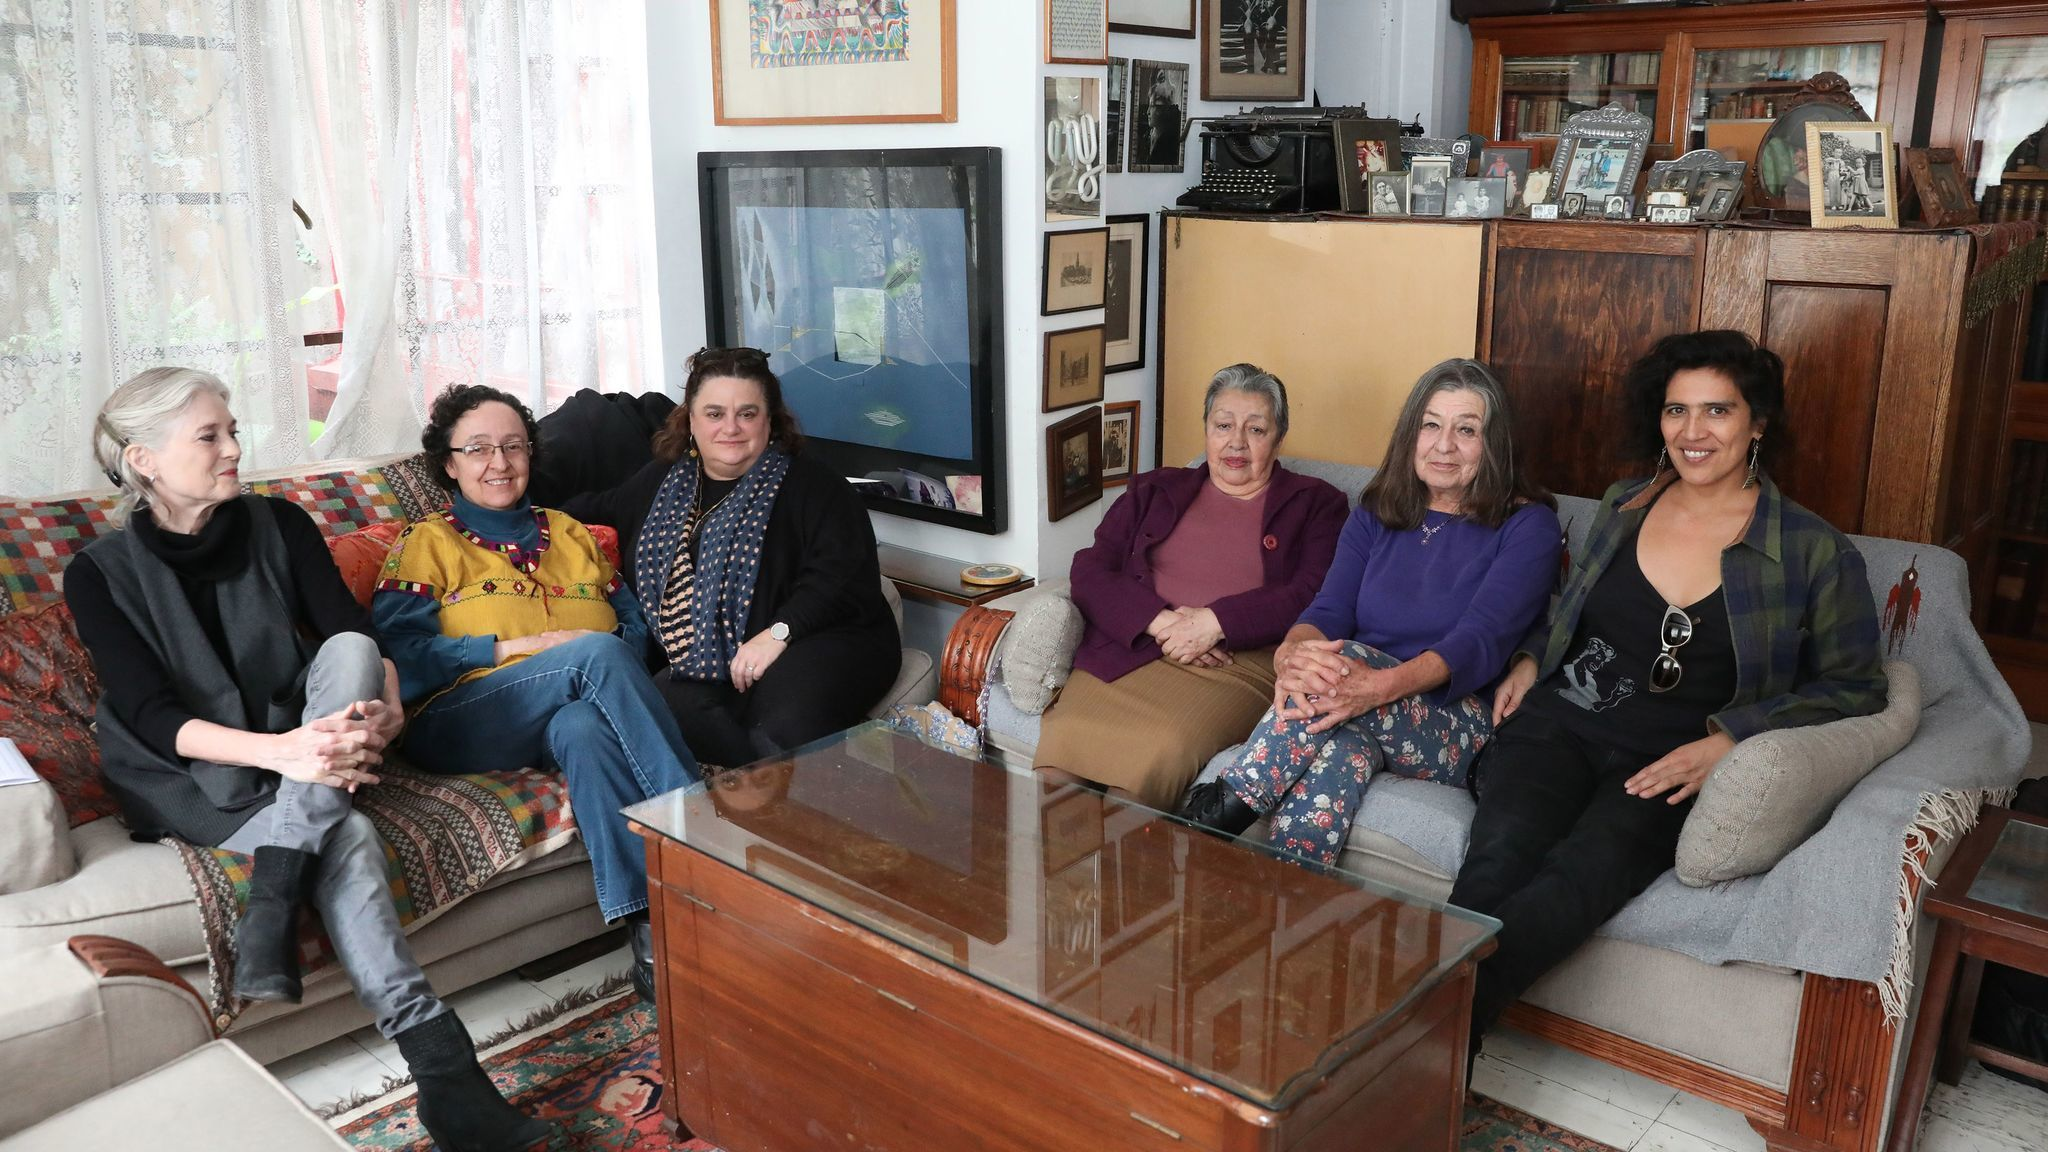 """The women behind """"Radical Women"""" gather for a roundtable discussion in Mexico City at the home and studio of Mónica Mayer."""